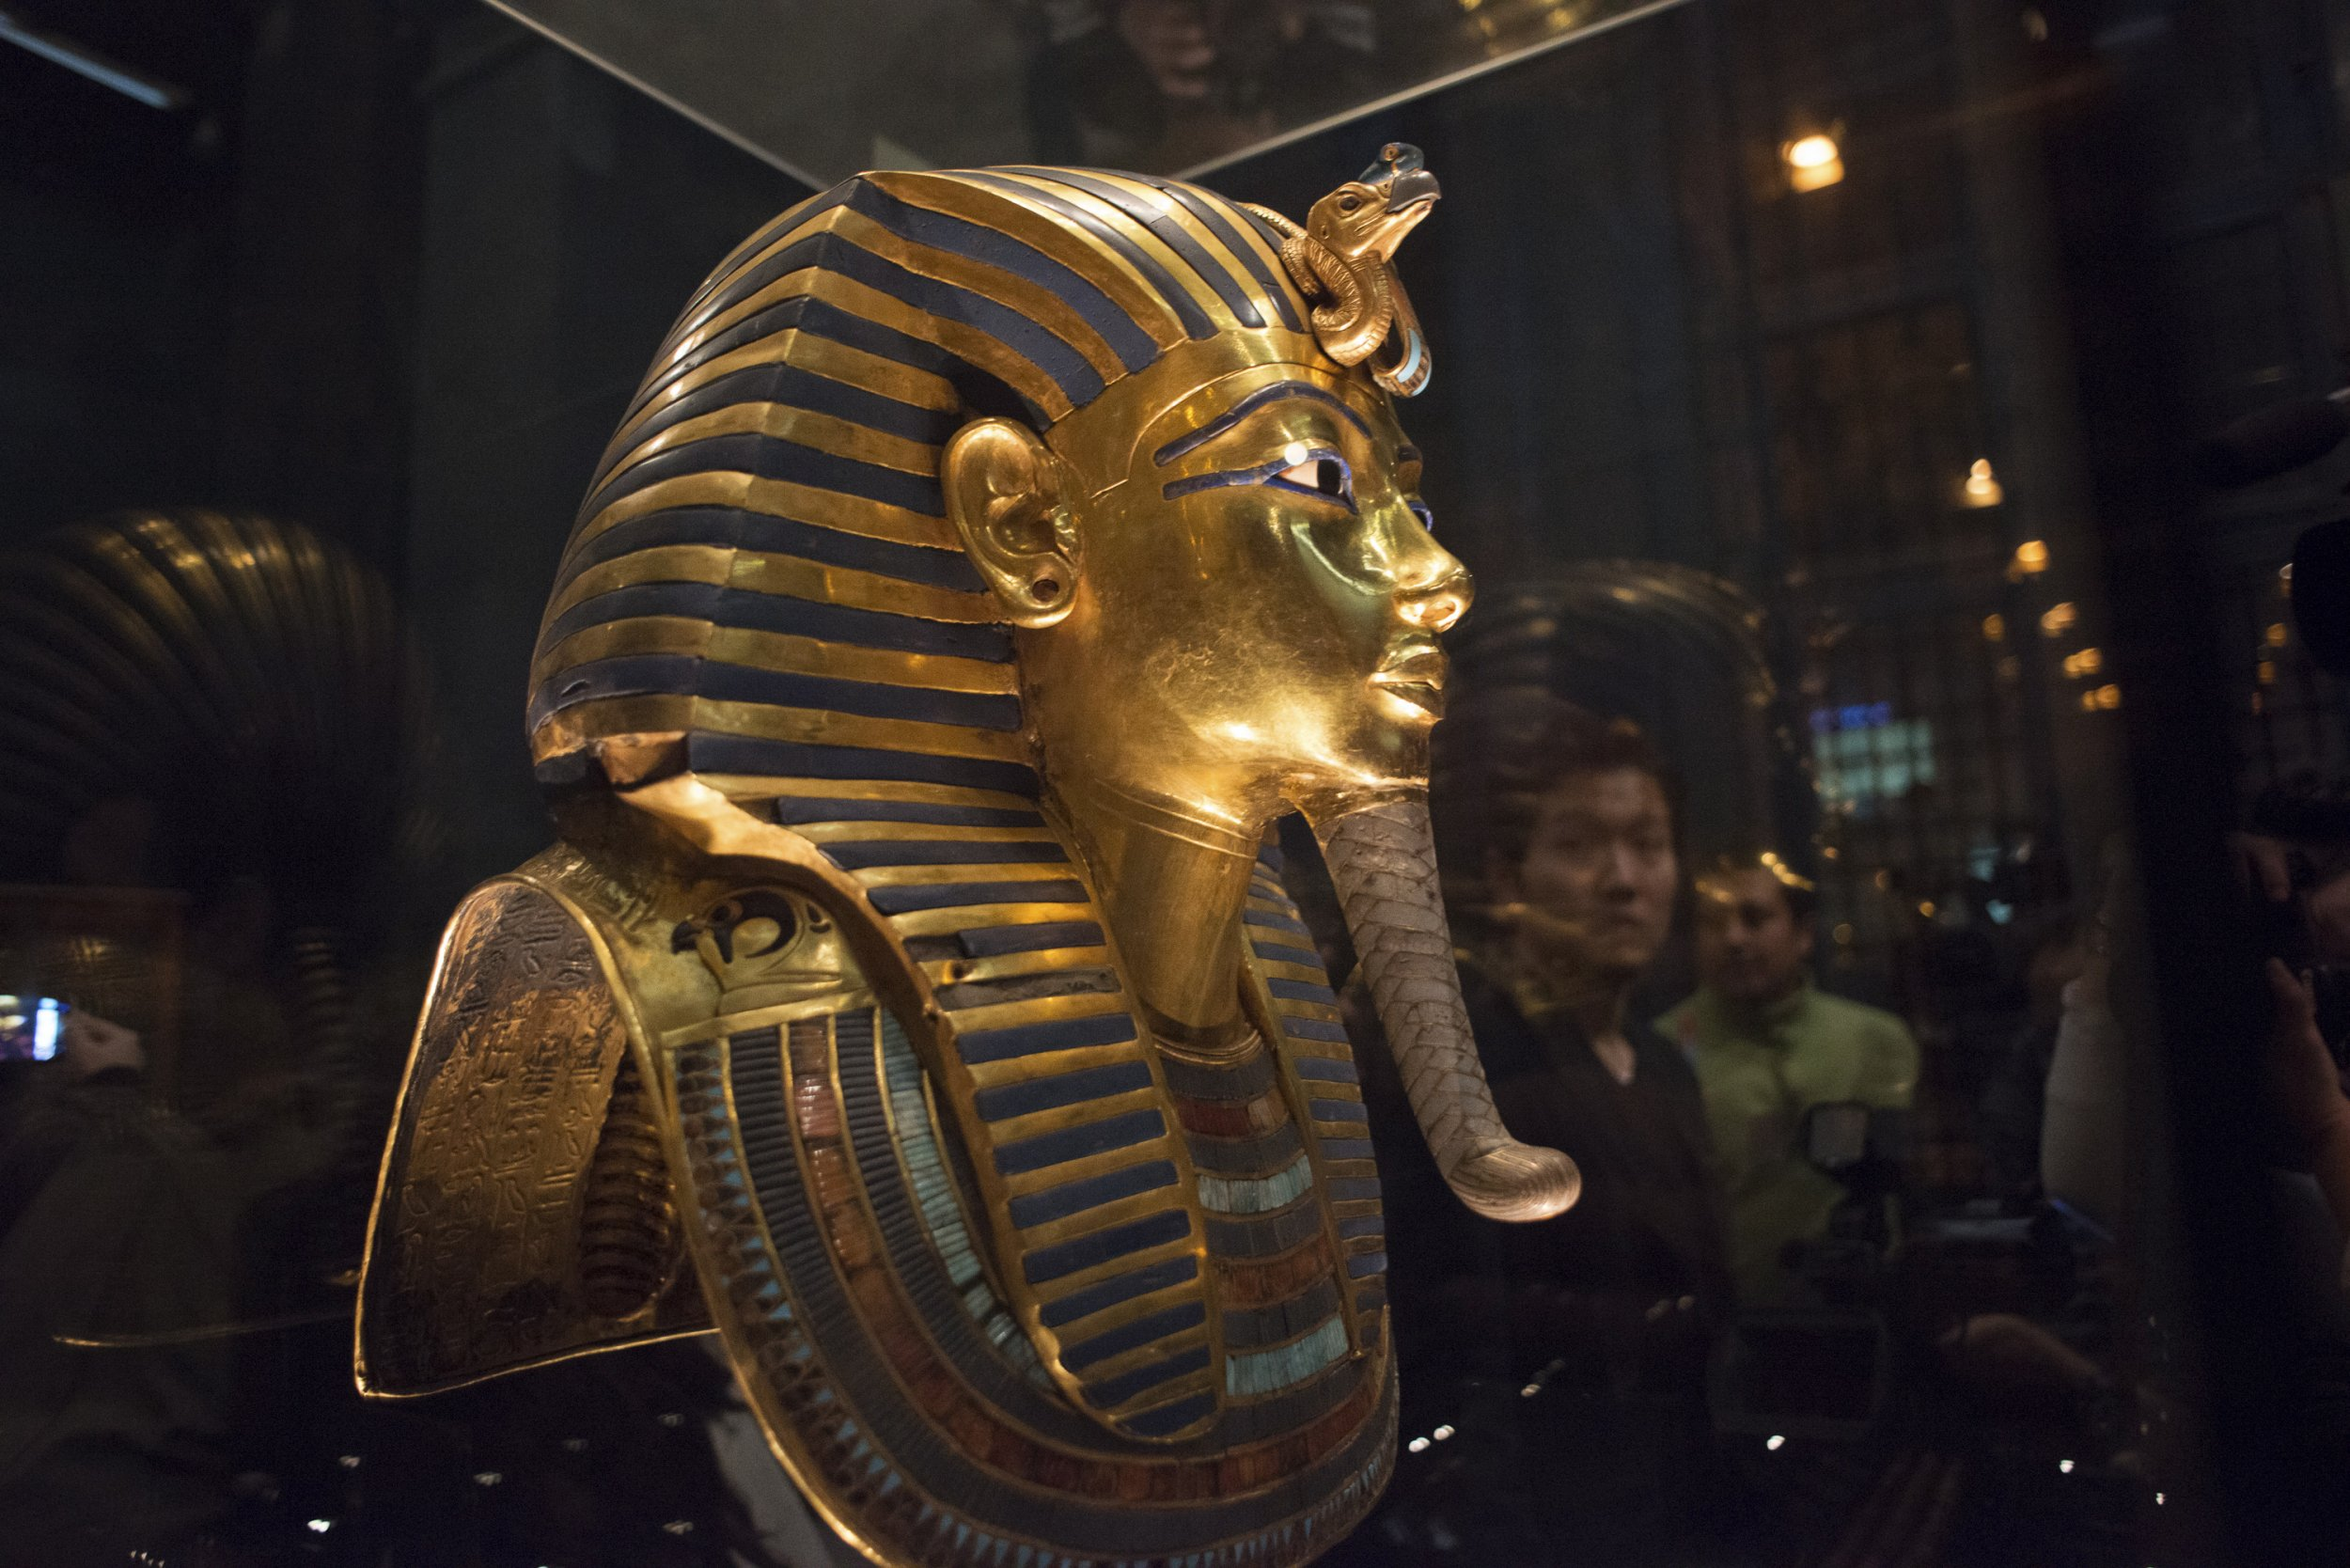 The Curse Of King Tuts Tomb Torrent: In King Tut's Tomb, Researchers Believe There Is A Hidden